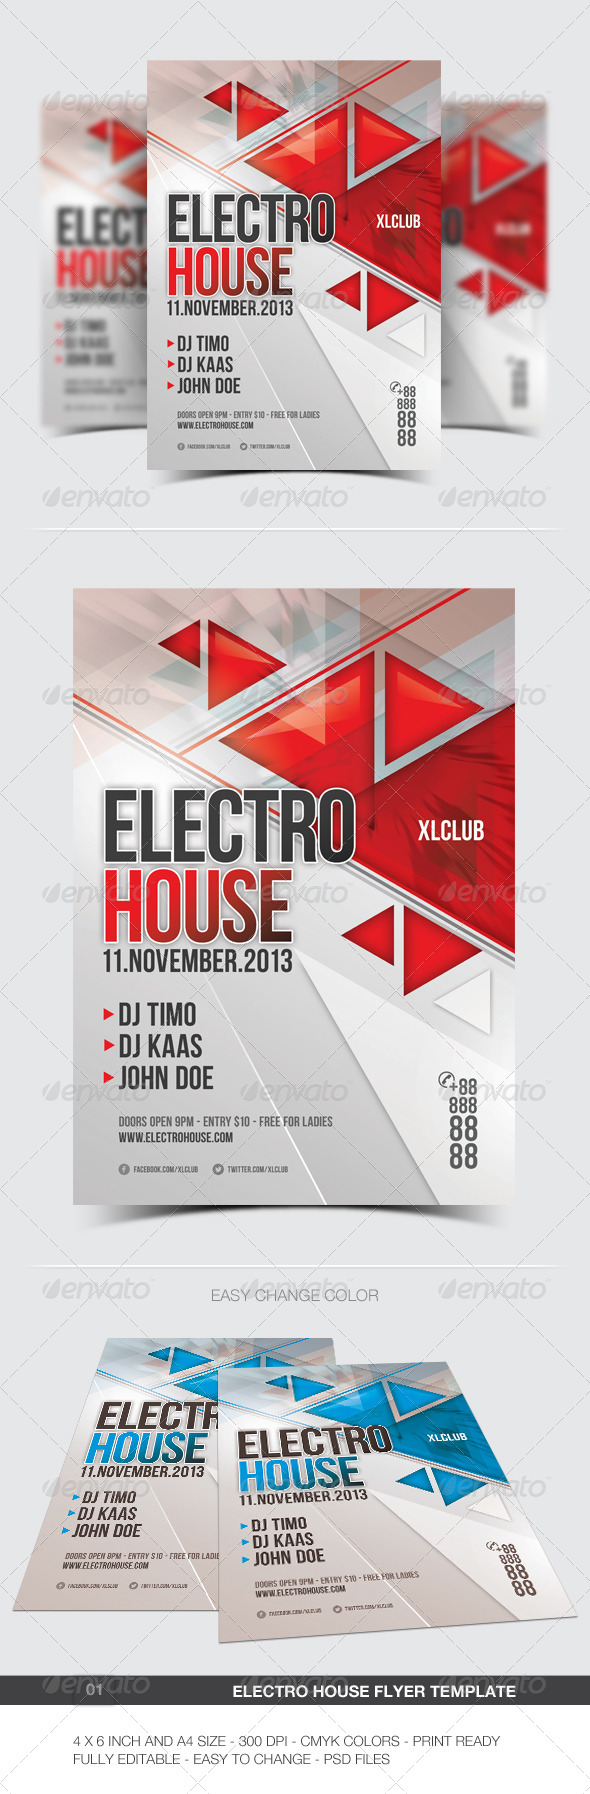 GraphicRiver Electro Flyer Poster 01 5891617